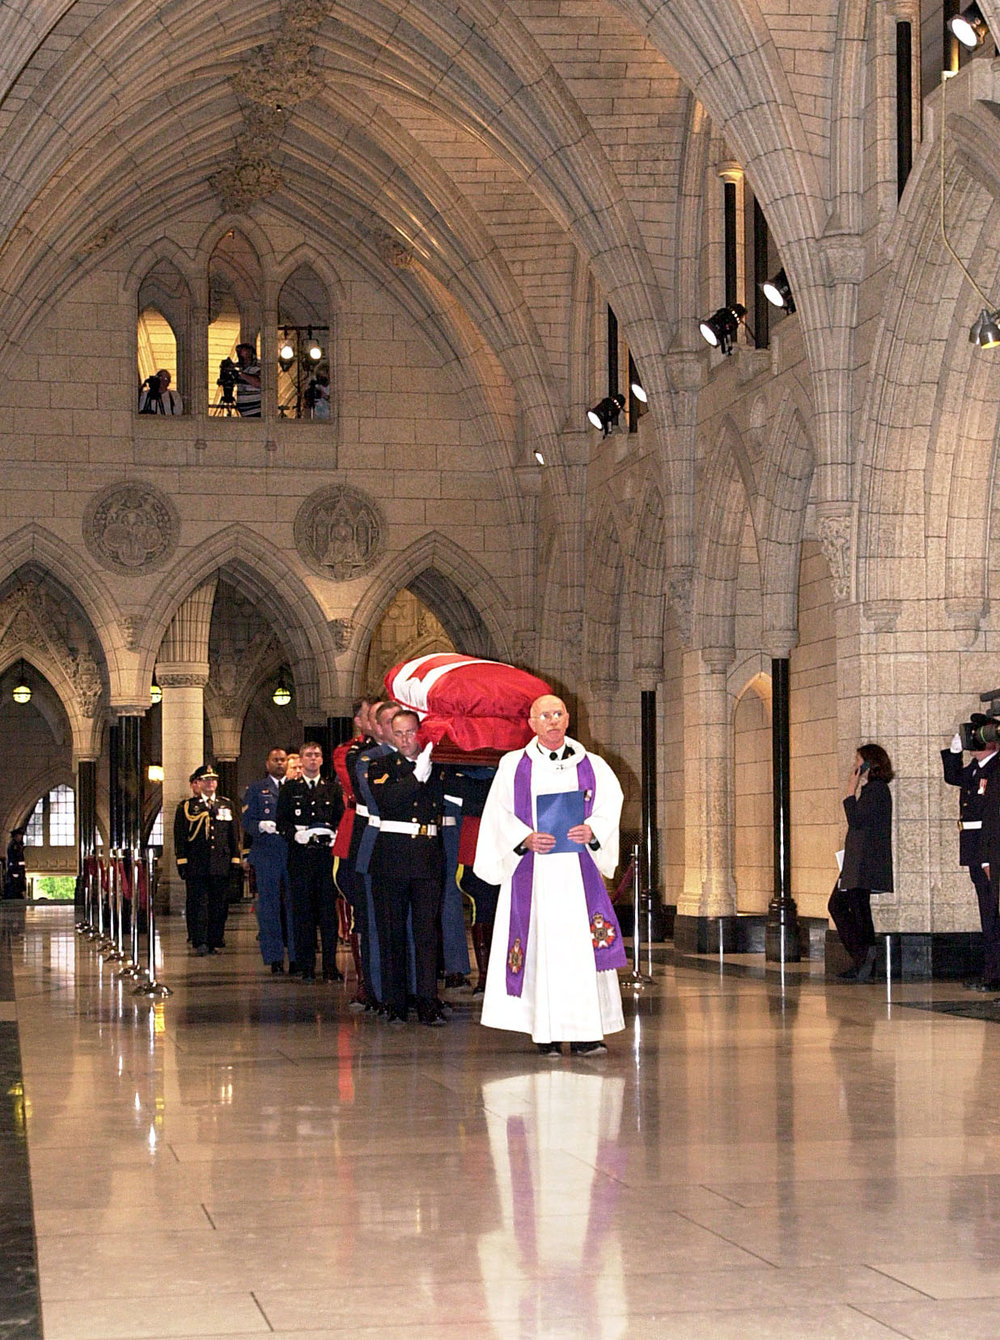 The Canadian Unknown Soldier is laid to rest in a special tomb at the national war memorial, Ottowa, Canada.